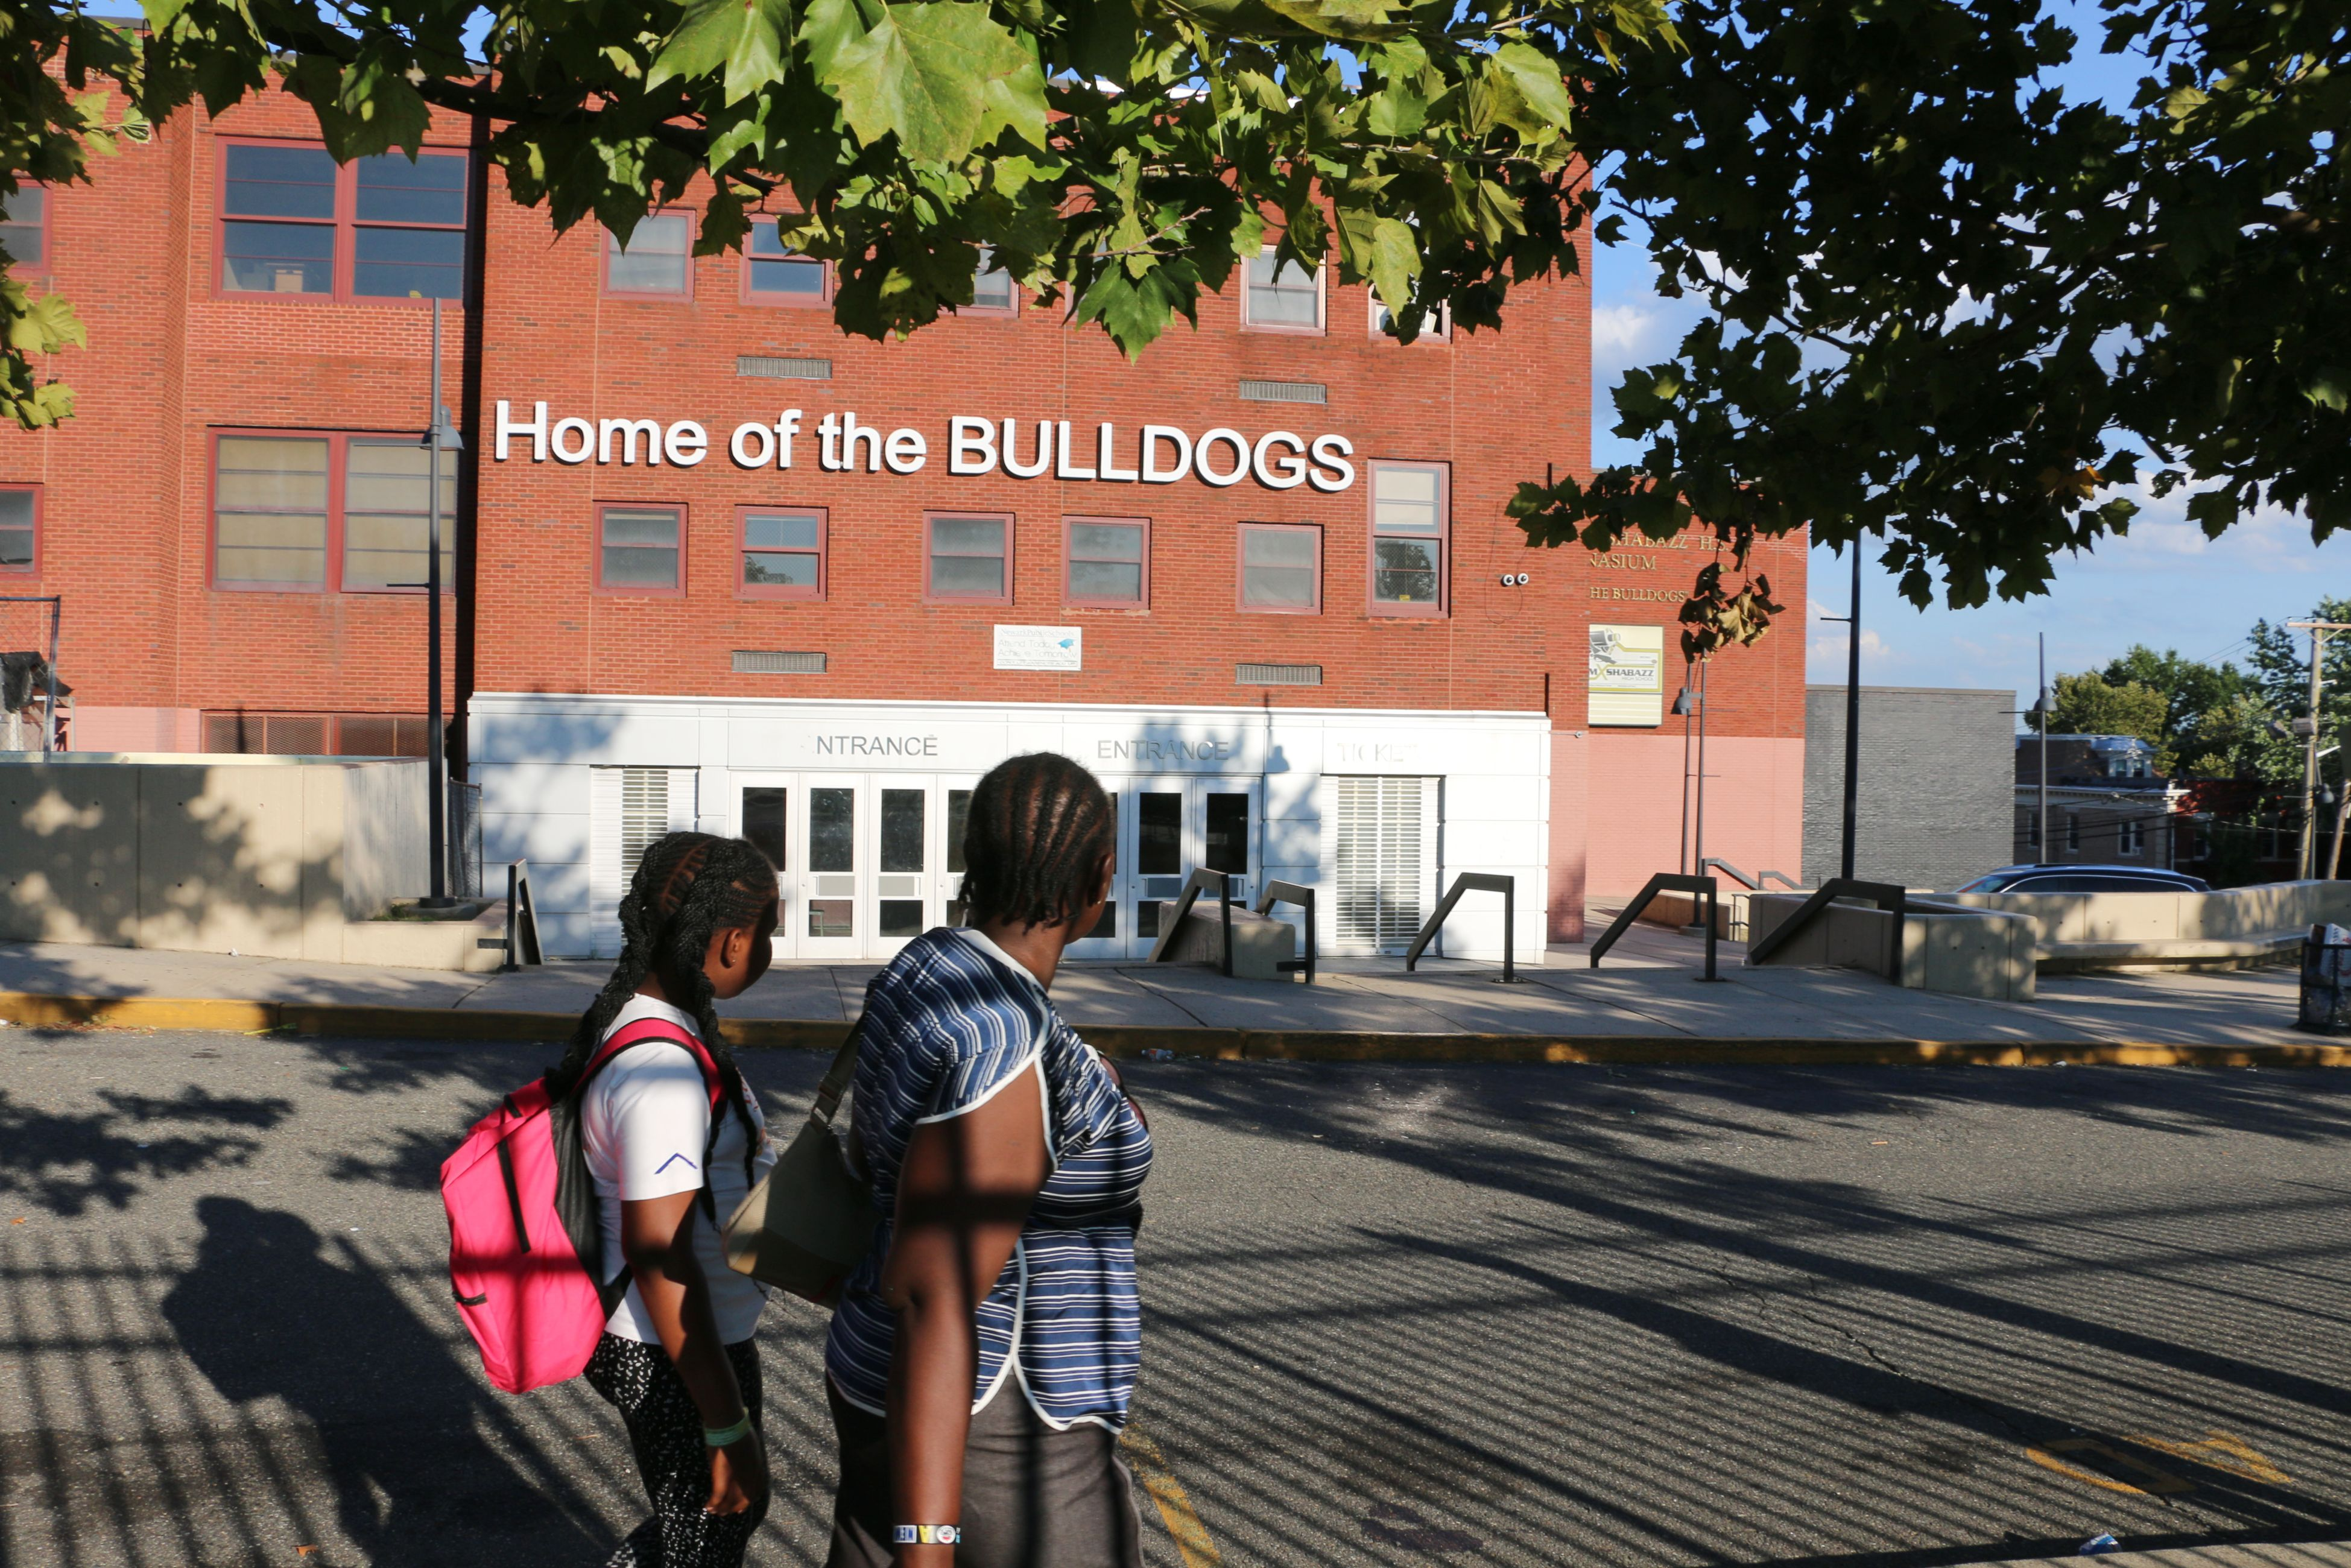 In the foreground, a student wearing a pink backpack stands behind an adult in a blue-striped shirt as they face Malcolm X Shabazz High School in the background.